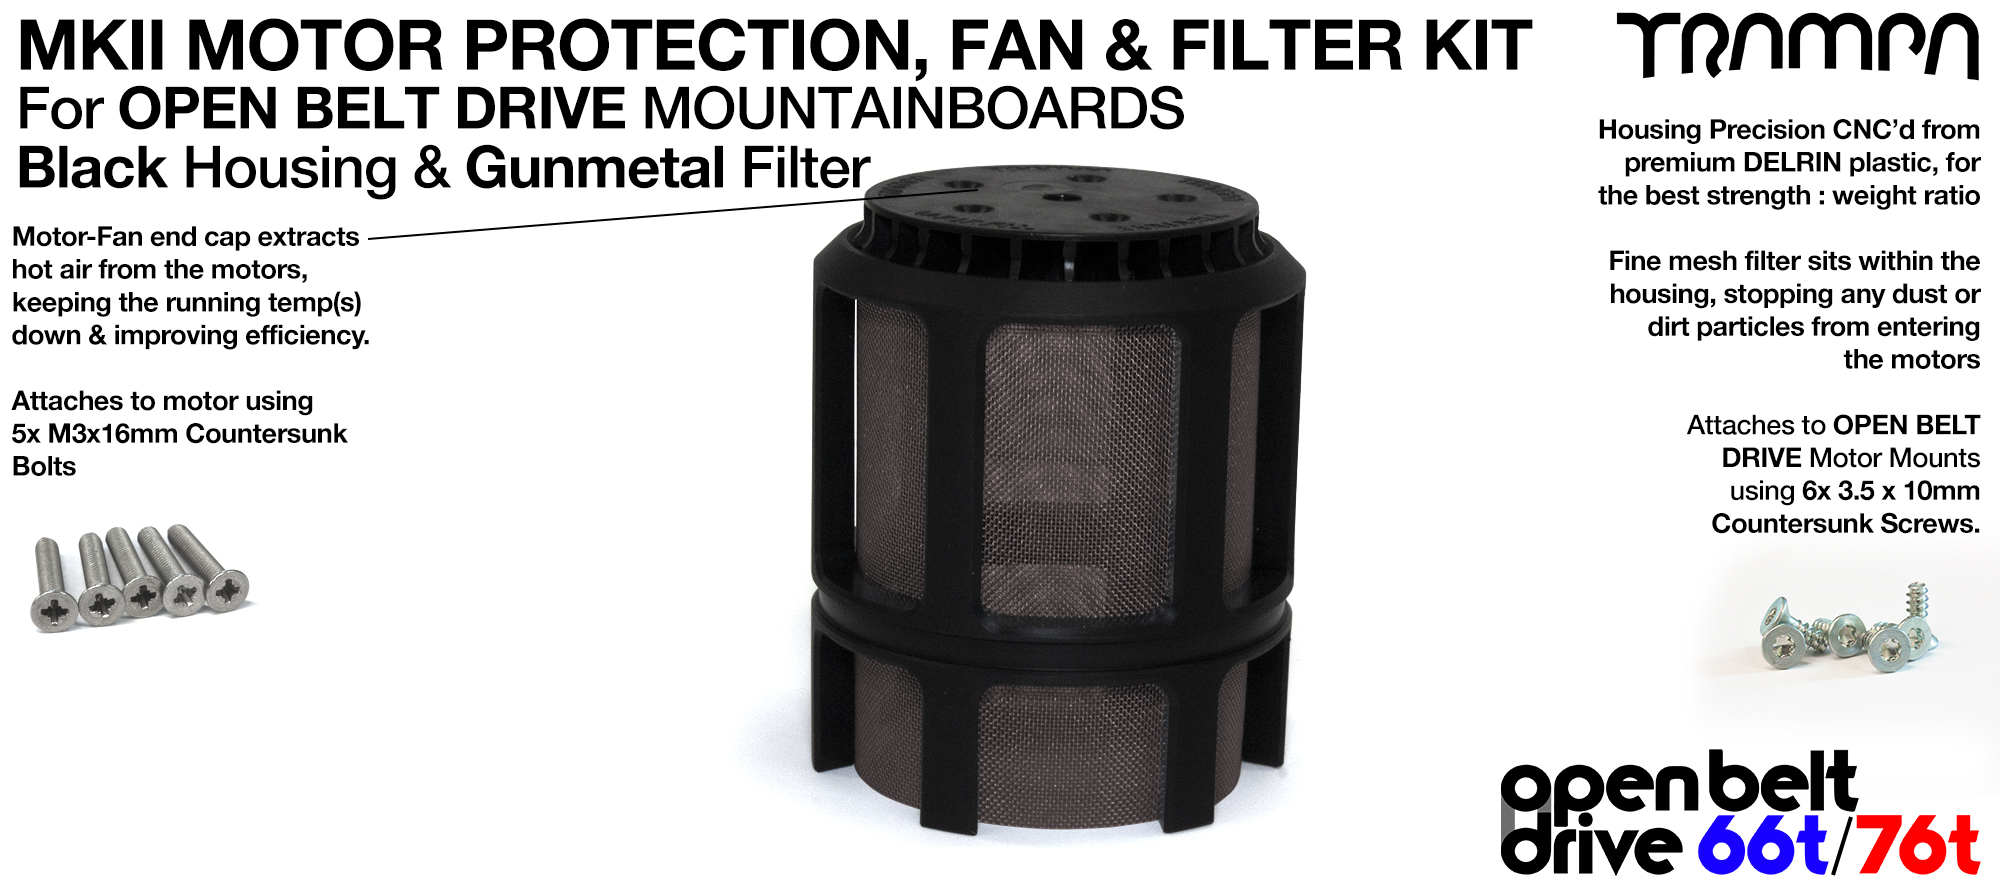 1x OBD MKII Motor protection Sleeve with GUNMETAL Filter